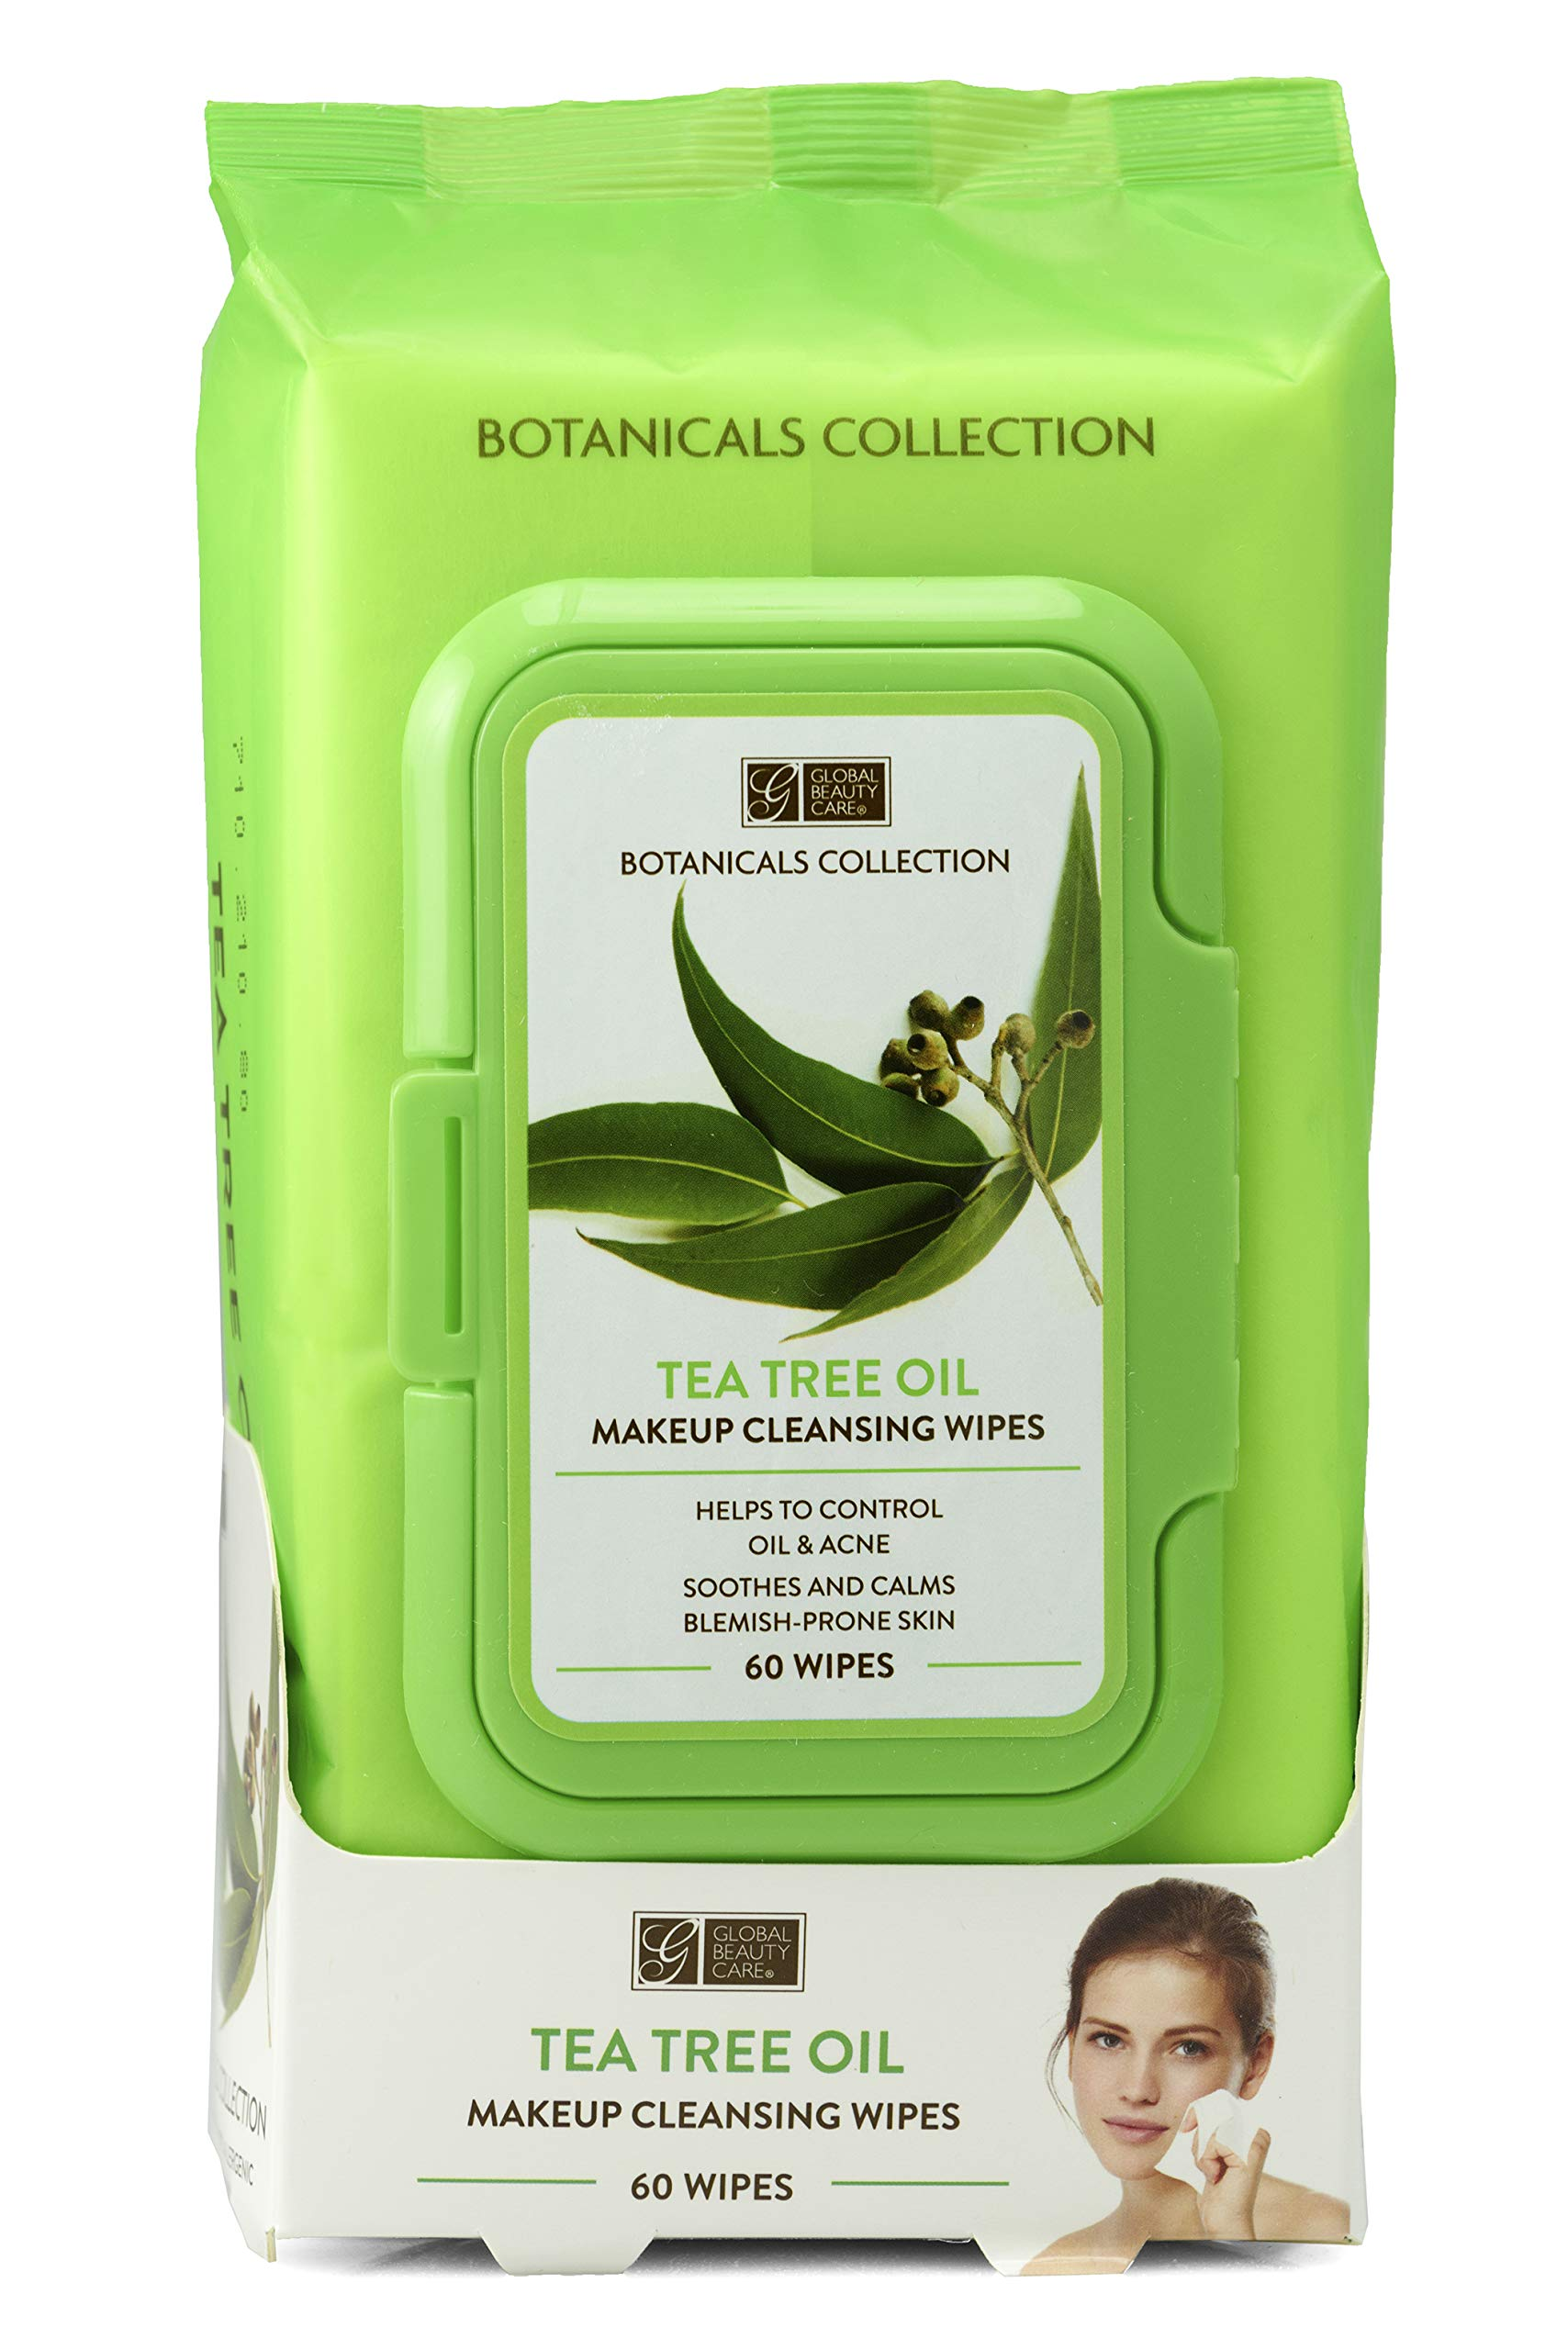 Botanicals Collection - Tea Tree Makeup Cleansing Wipes